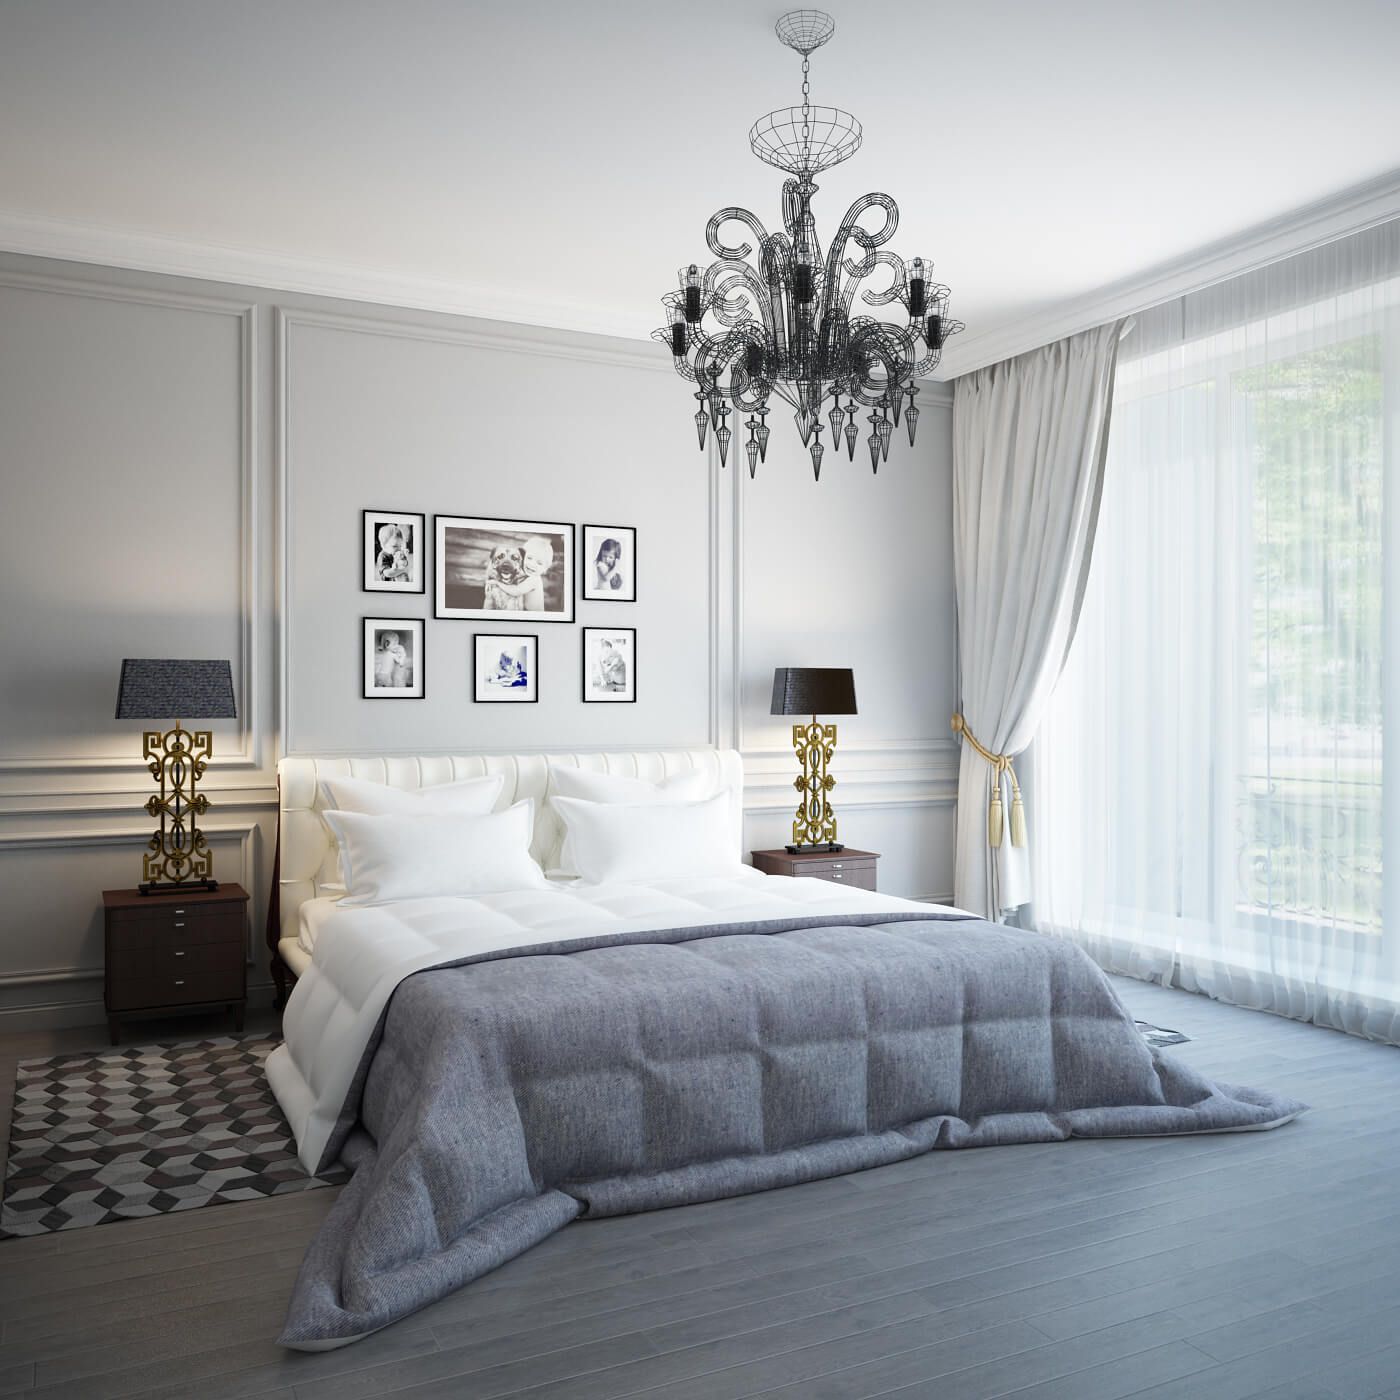 10 bedroom decorations that will inspire you - Houzz dormitorios ...